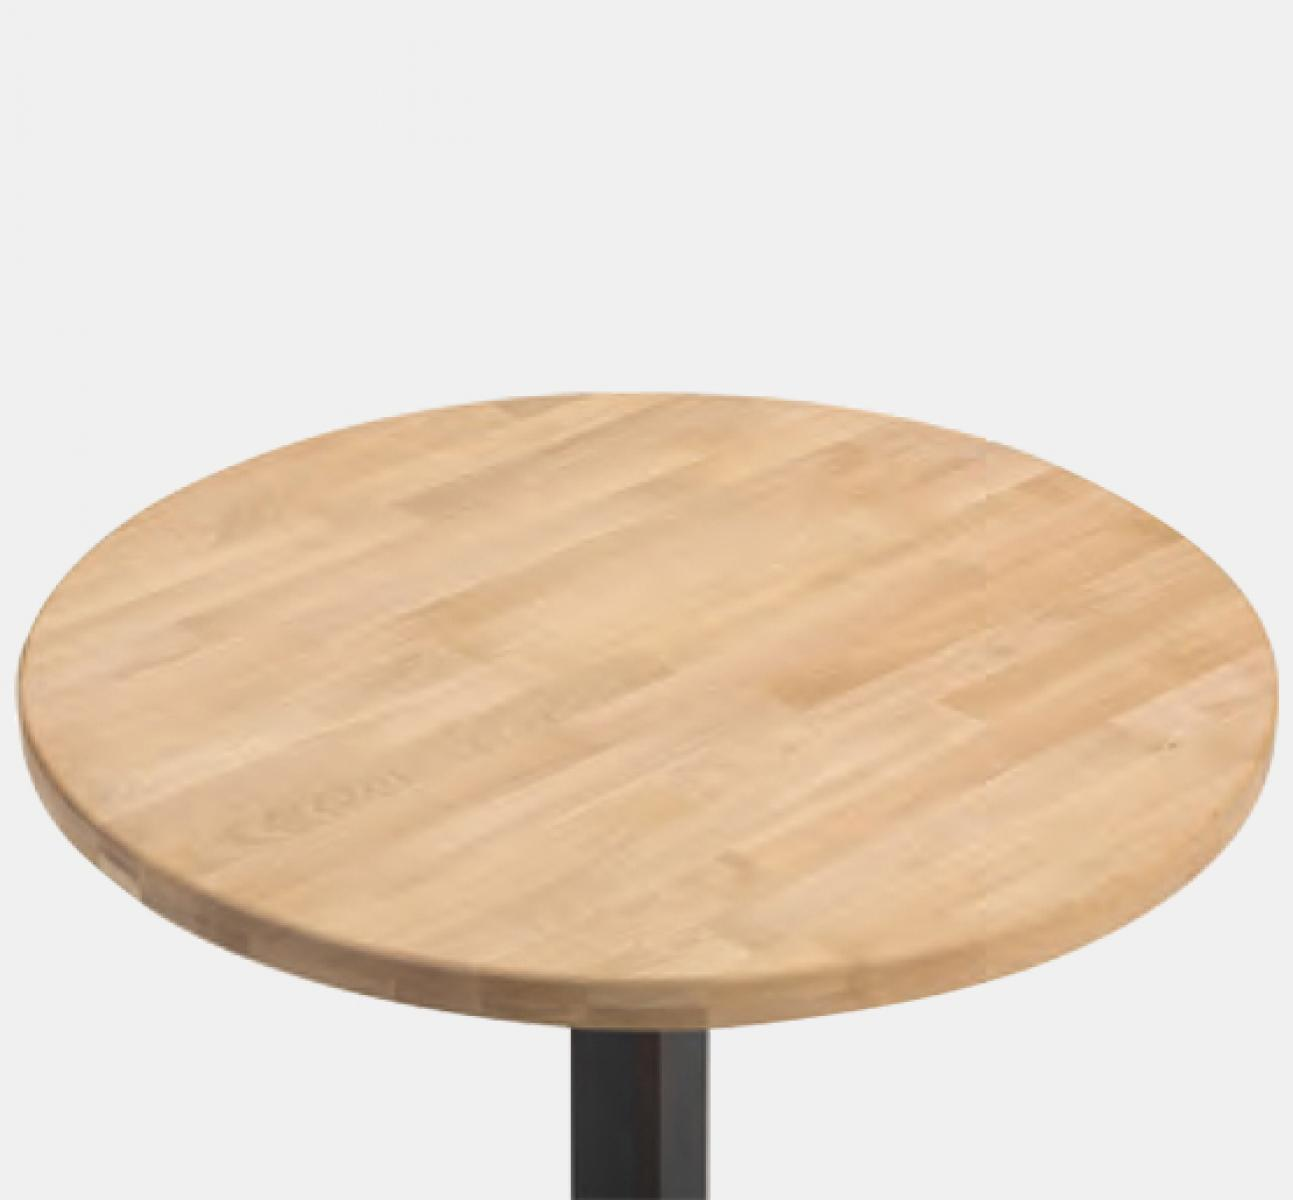 Round Table Tops Hampstead Round Table Top 900mm Dia Uhs